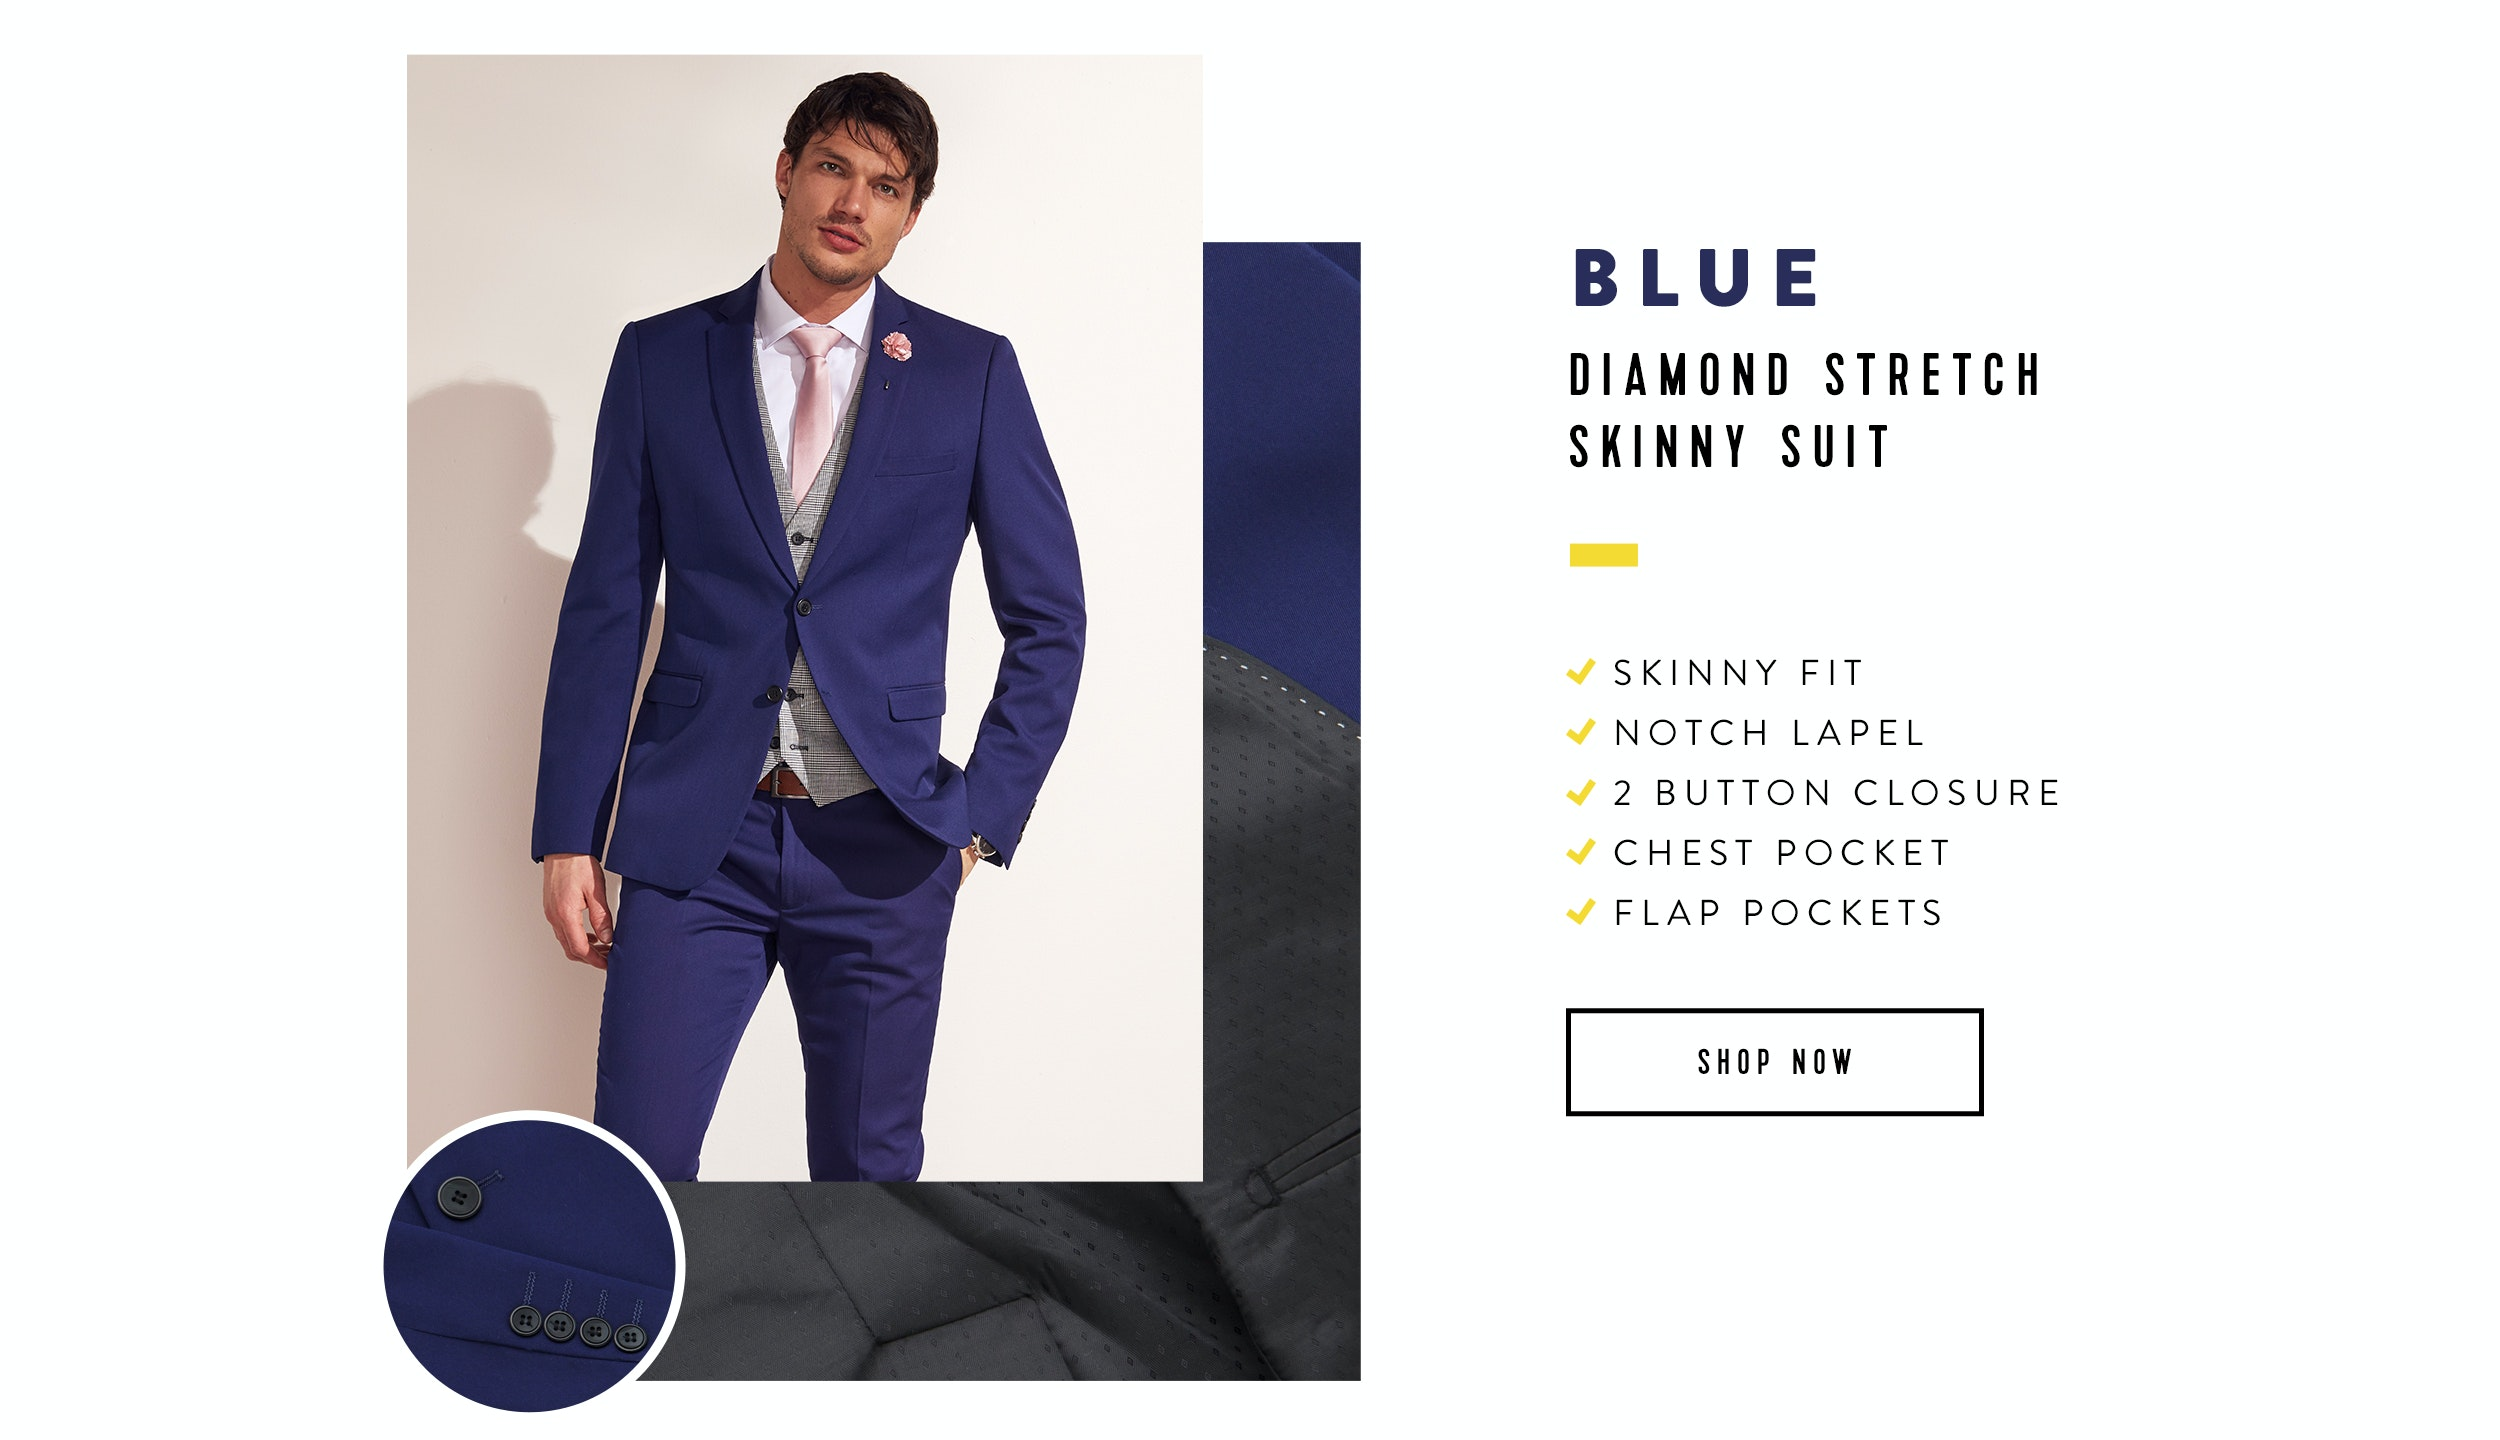 Shop The Diamond Stretch Skinny Suit In Blue